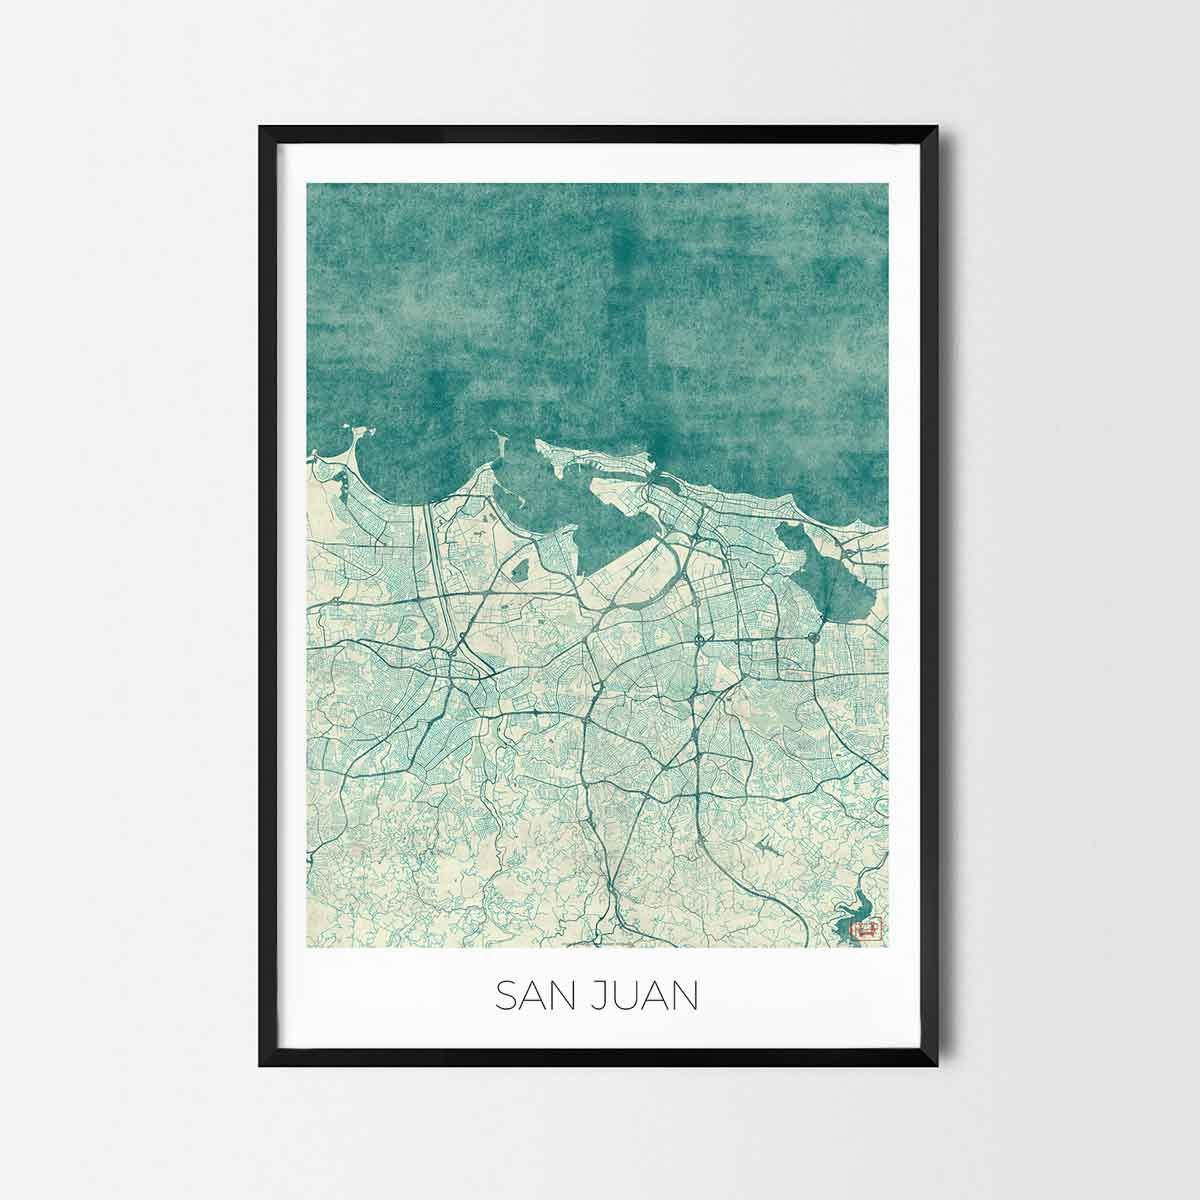 San juan art posters city art map posters and prints san juan san juan art posters and prints of your favorite city unique design of vancouver map gumiabroncs Image collections